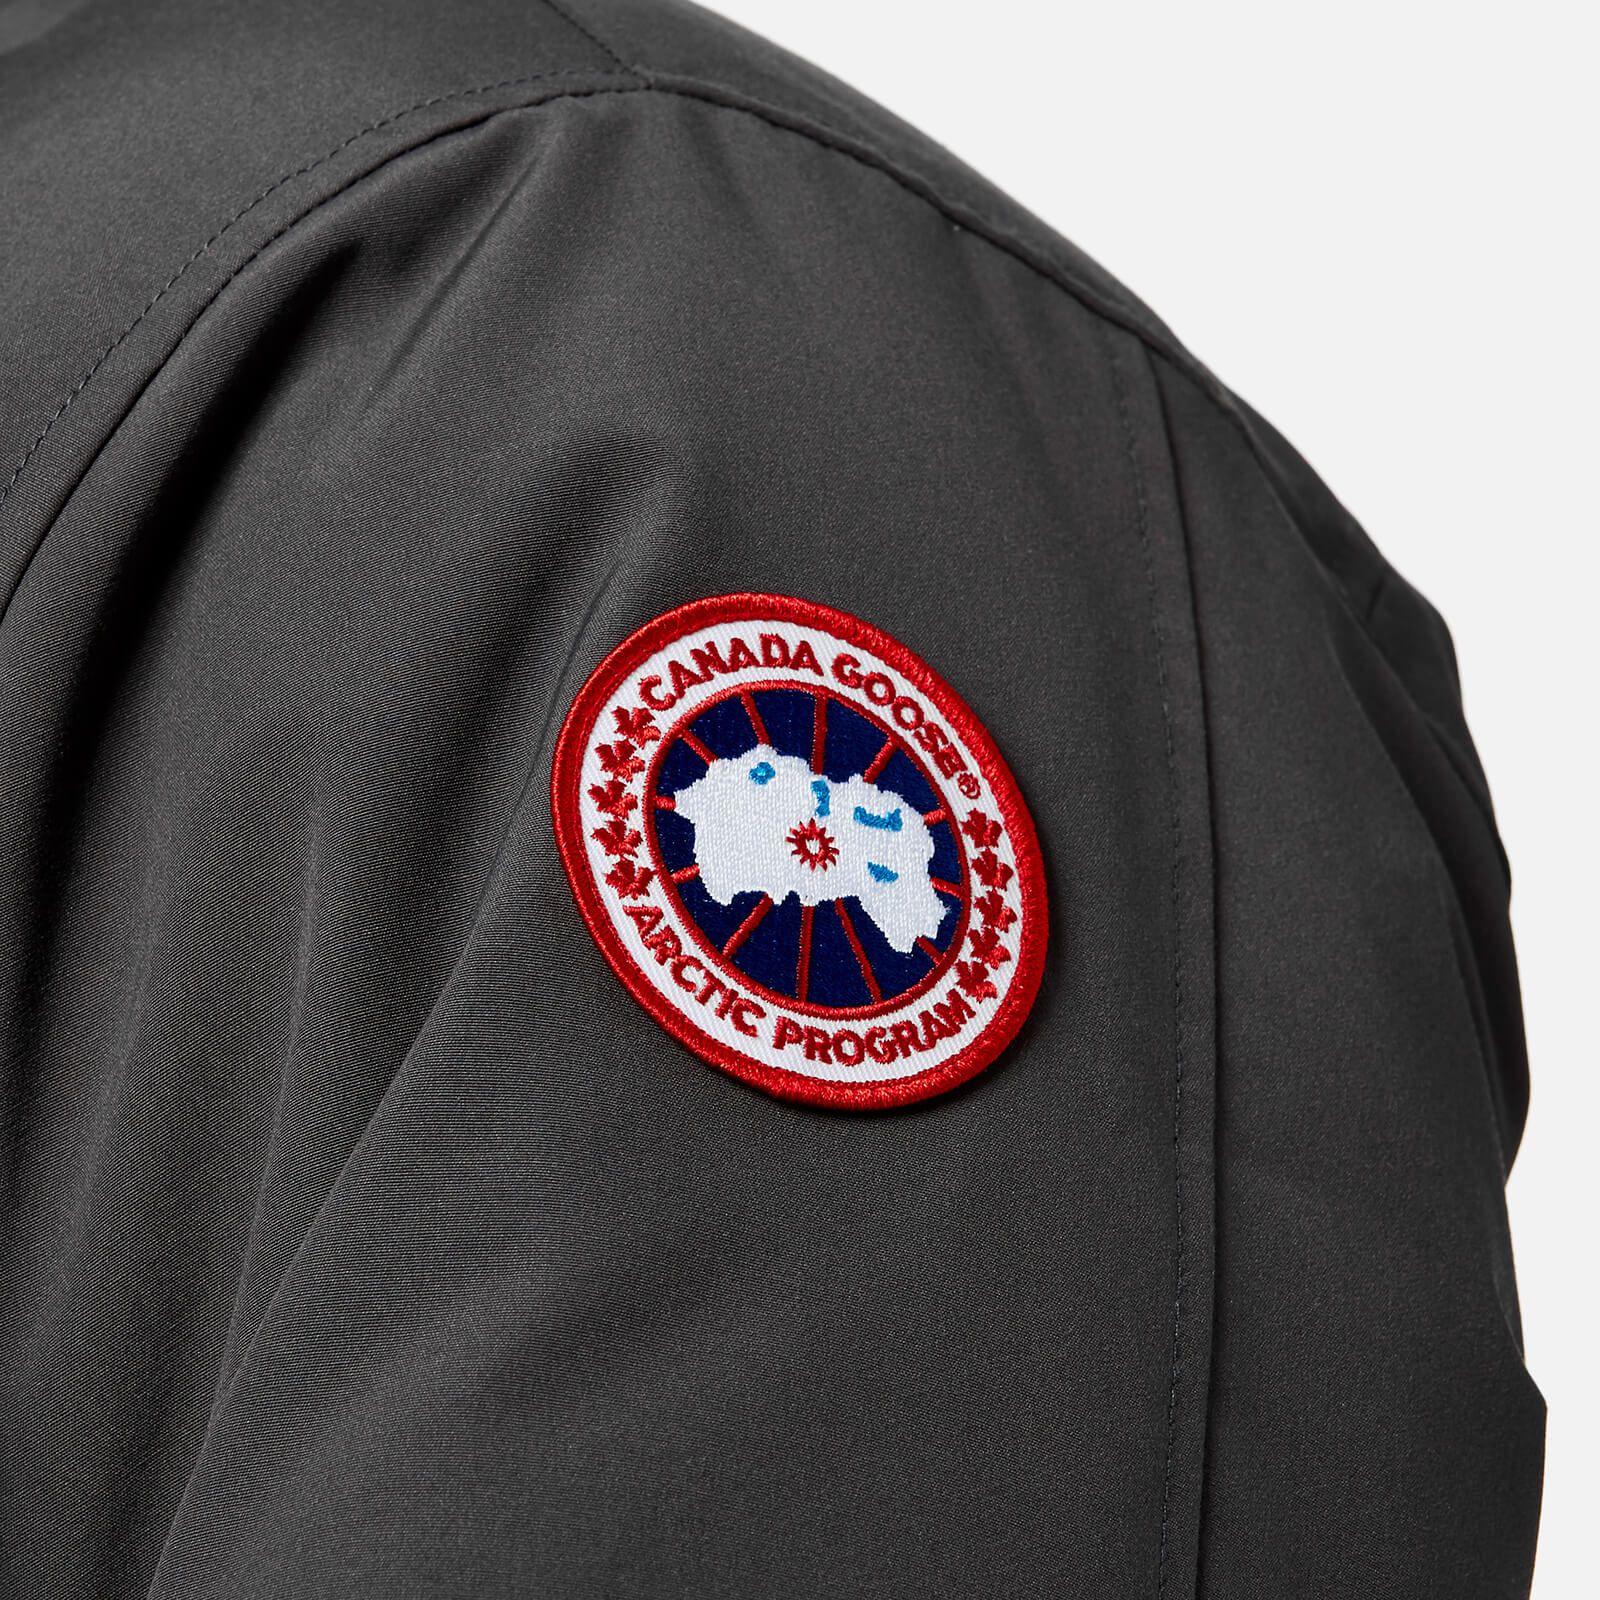 44f50db97 Canada Goose Men's Selkirk Parka Jacket - Graphite in 2019 ...